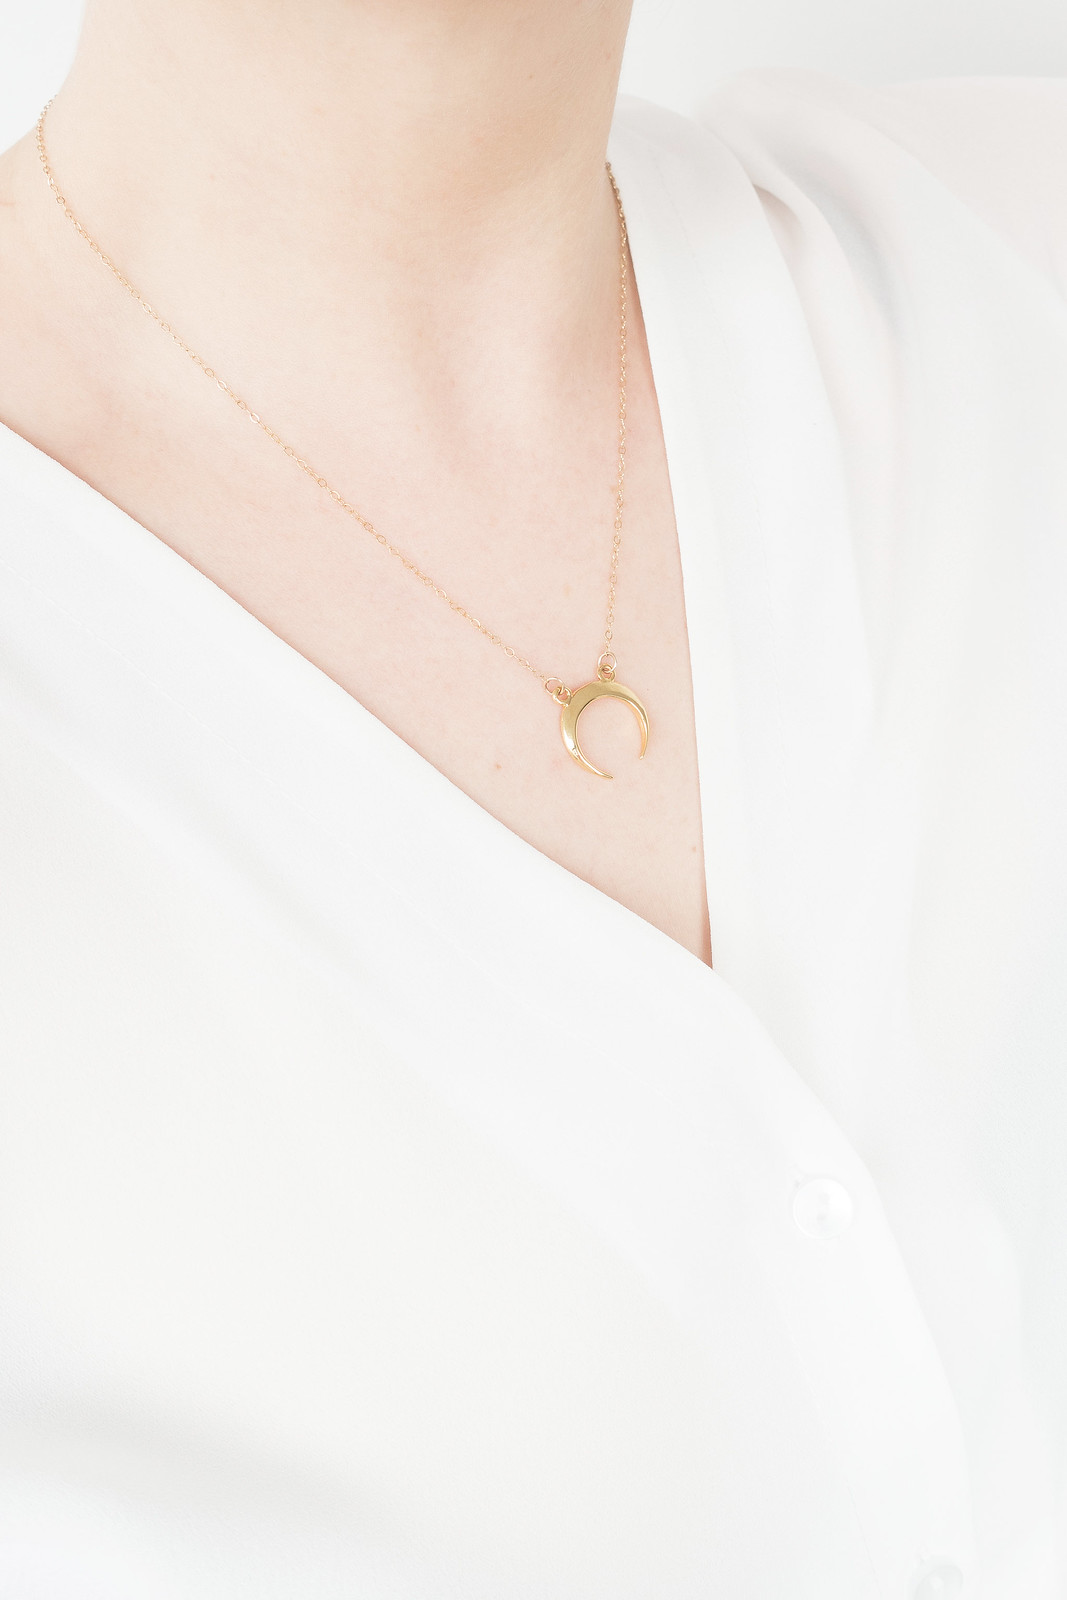 Introducing: The Crescent Necklace